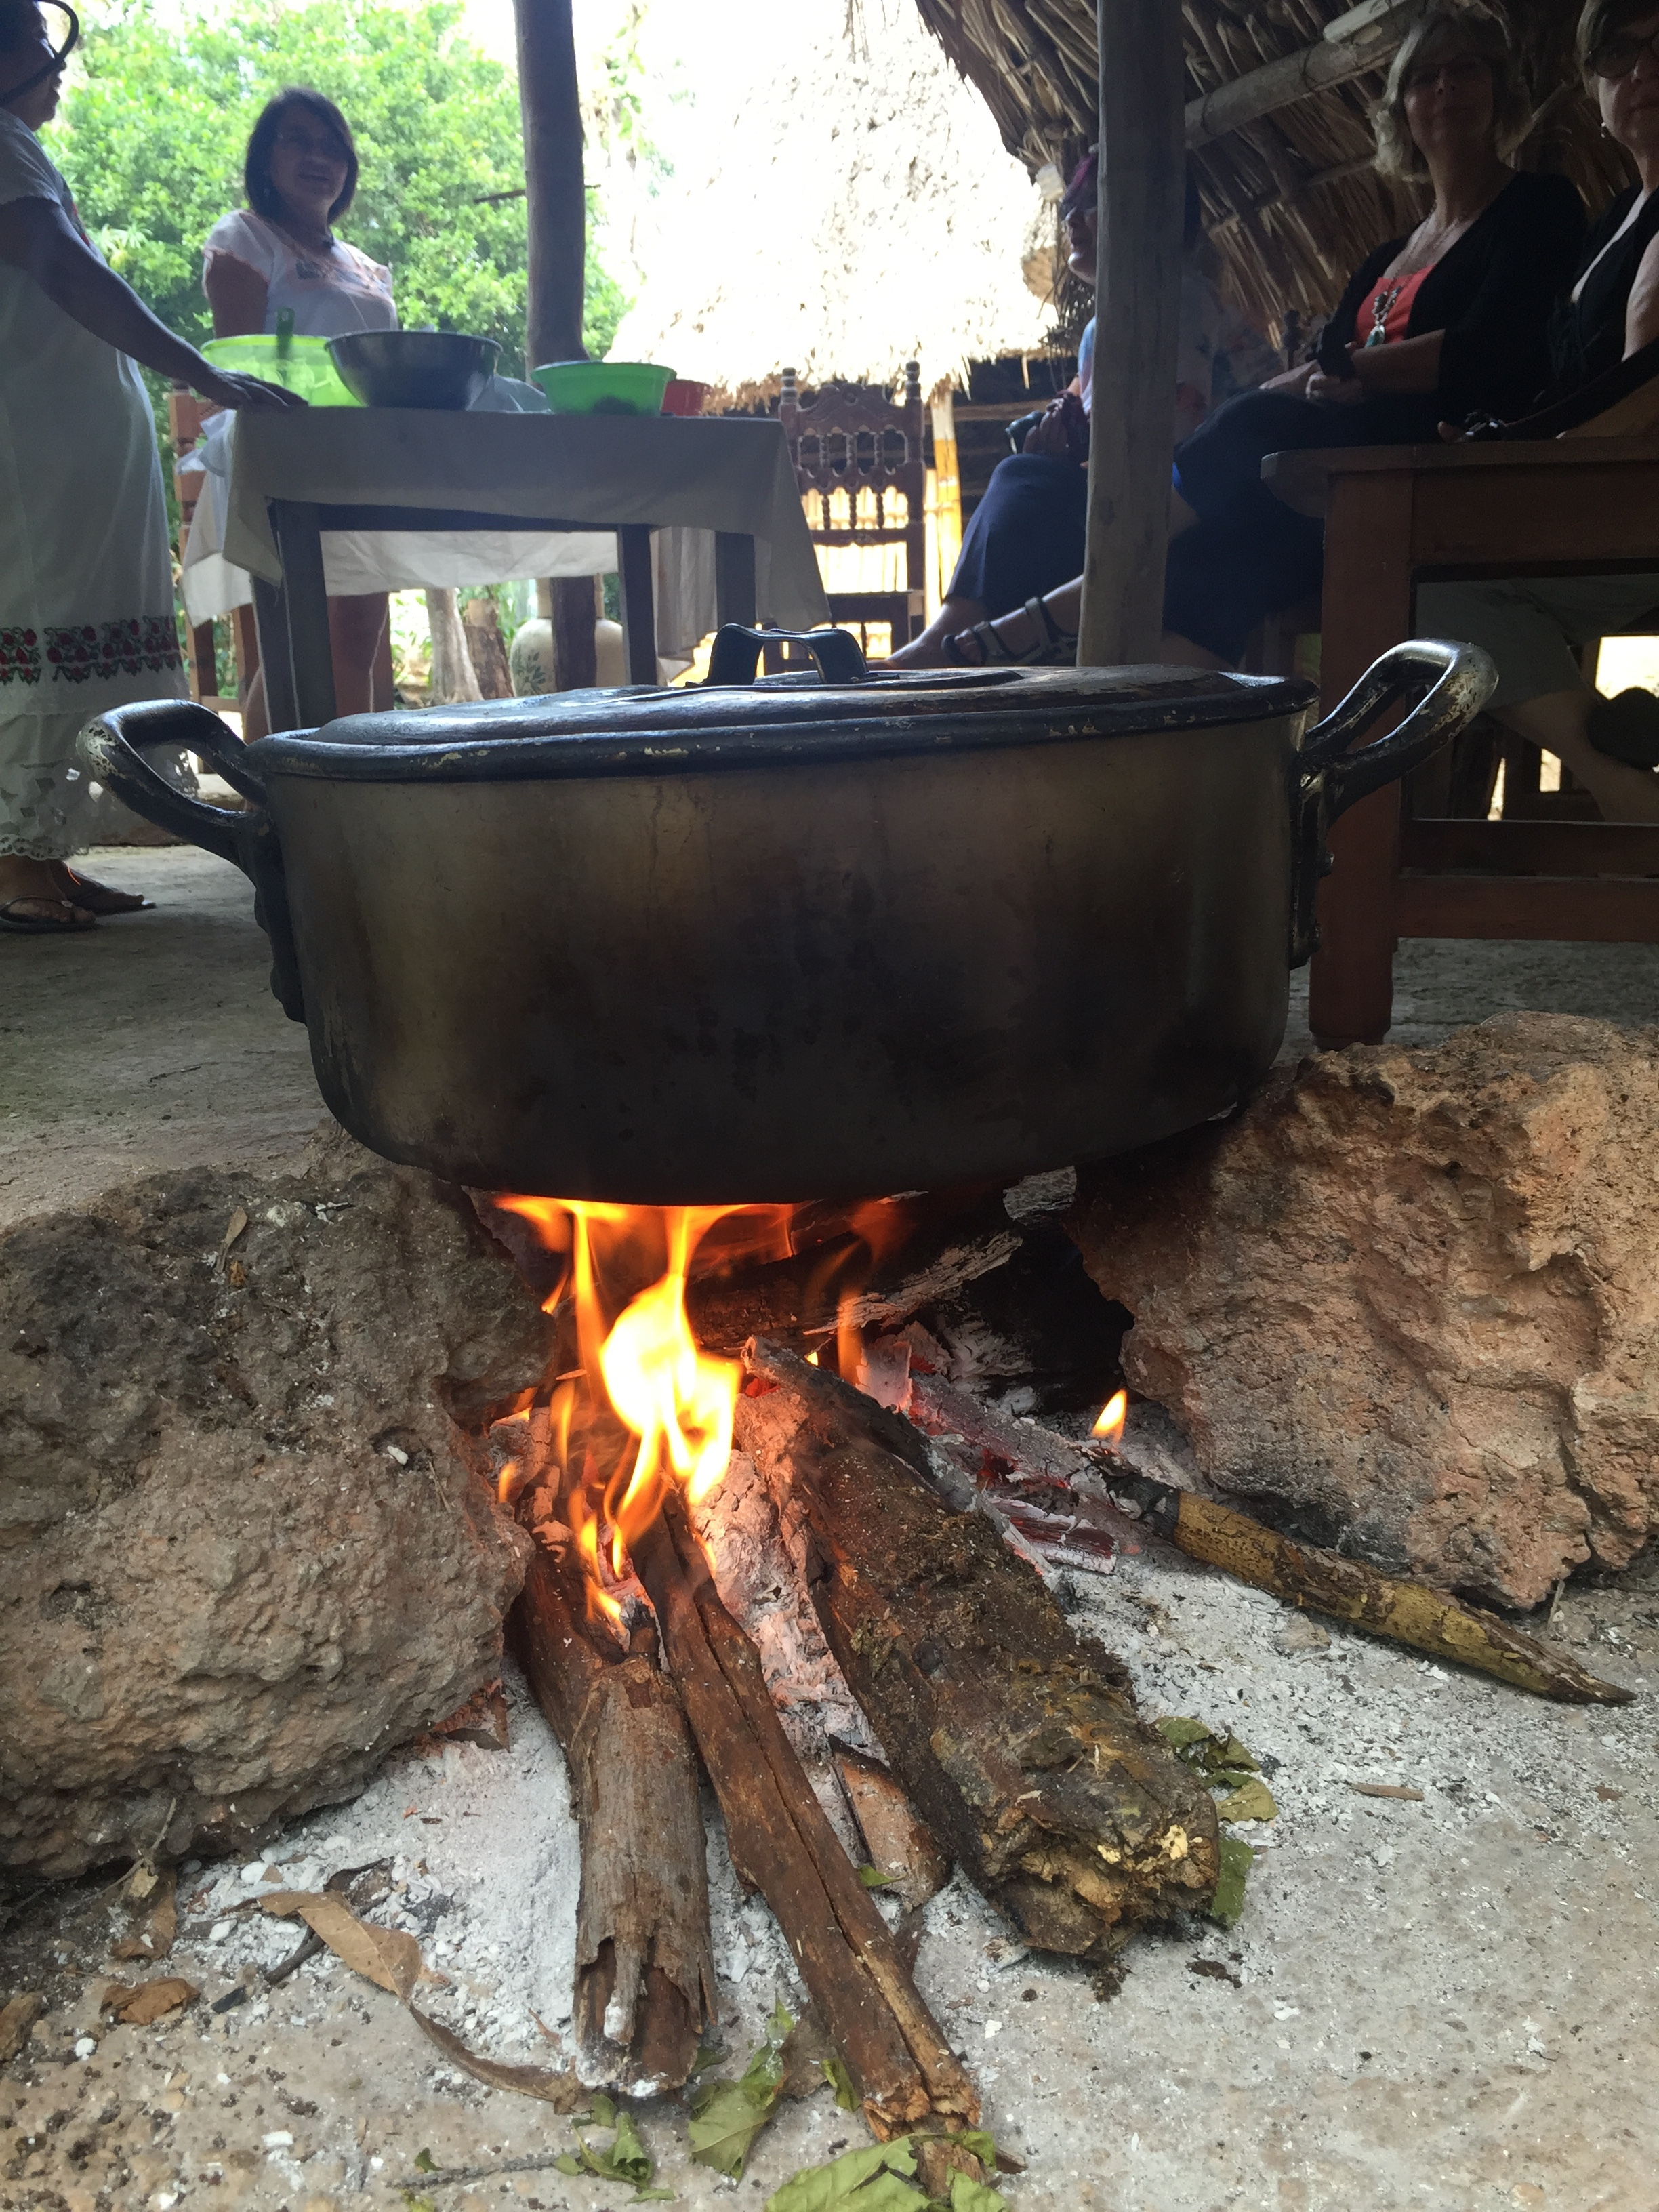 Casual, Fun, Cooking - An Authentic Experience, cooking real Yucatecan food, and eating it